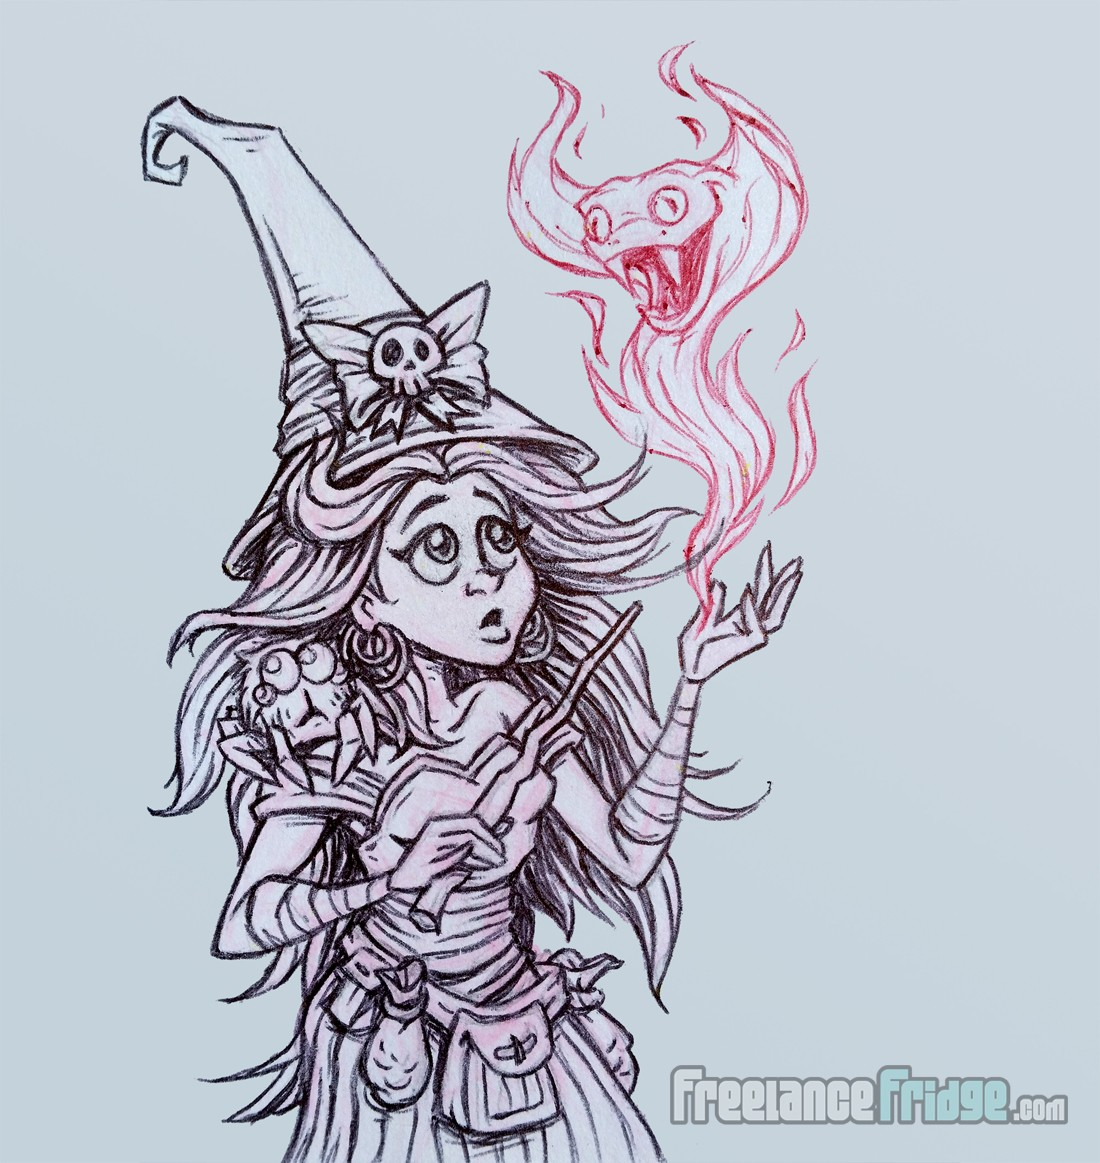 Cute Witch Girl Character with Pet Jumping Spider Casting a Spell Cartoon Pencil and Pen Sketch Drawing Illustration